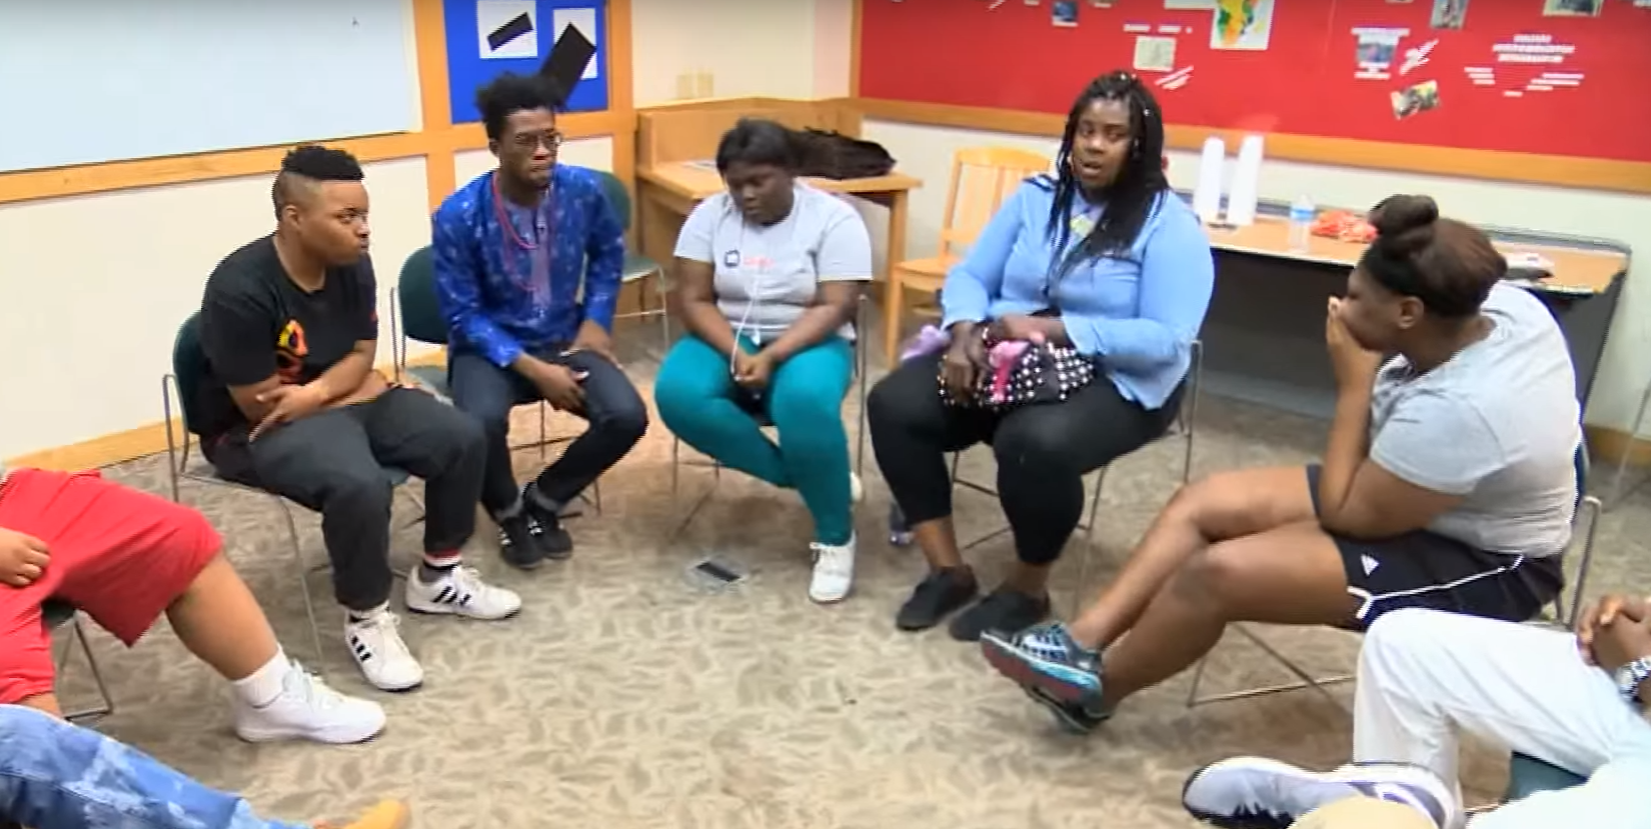 Abioye works with youth at the West Englewood Library